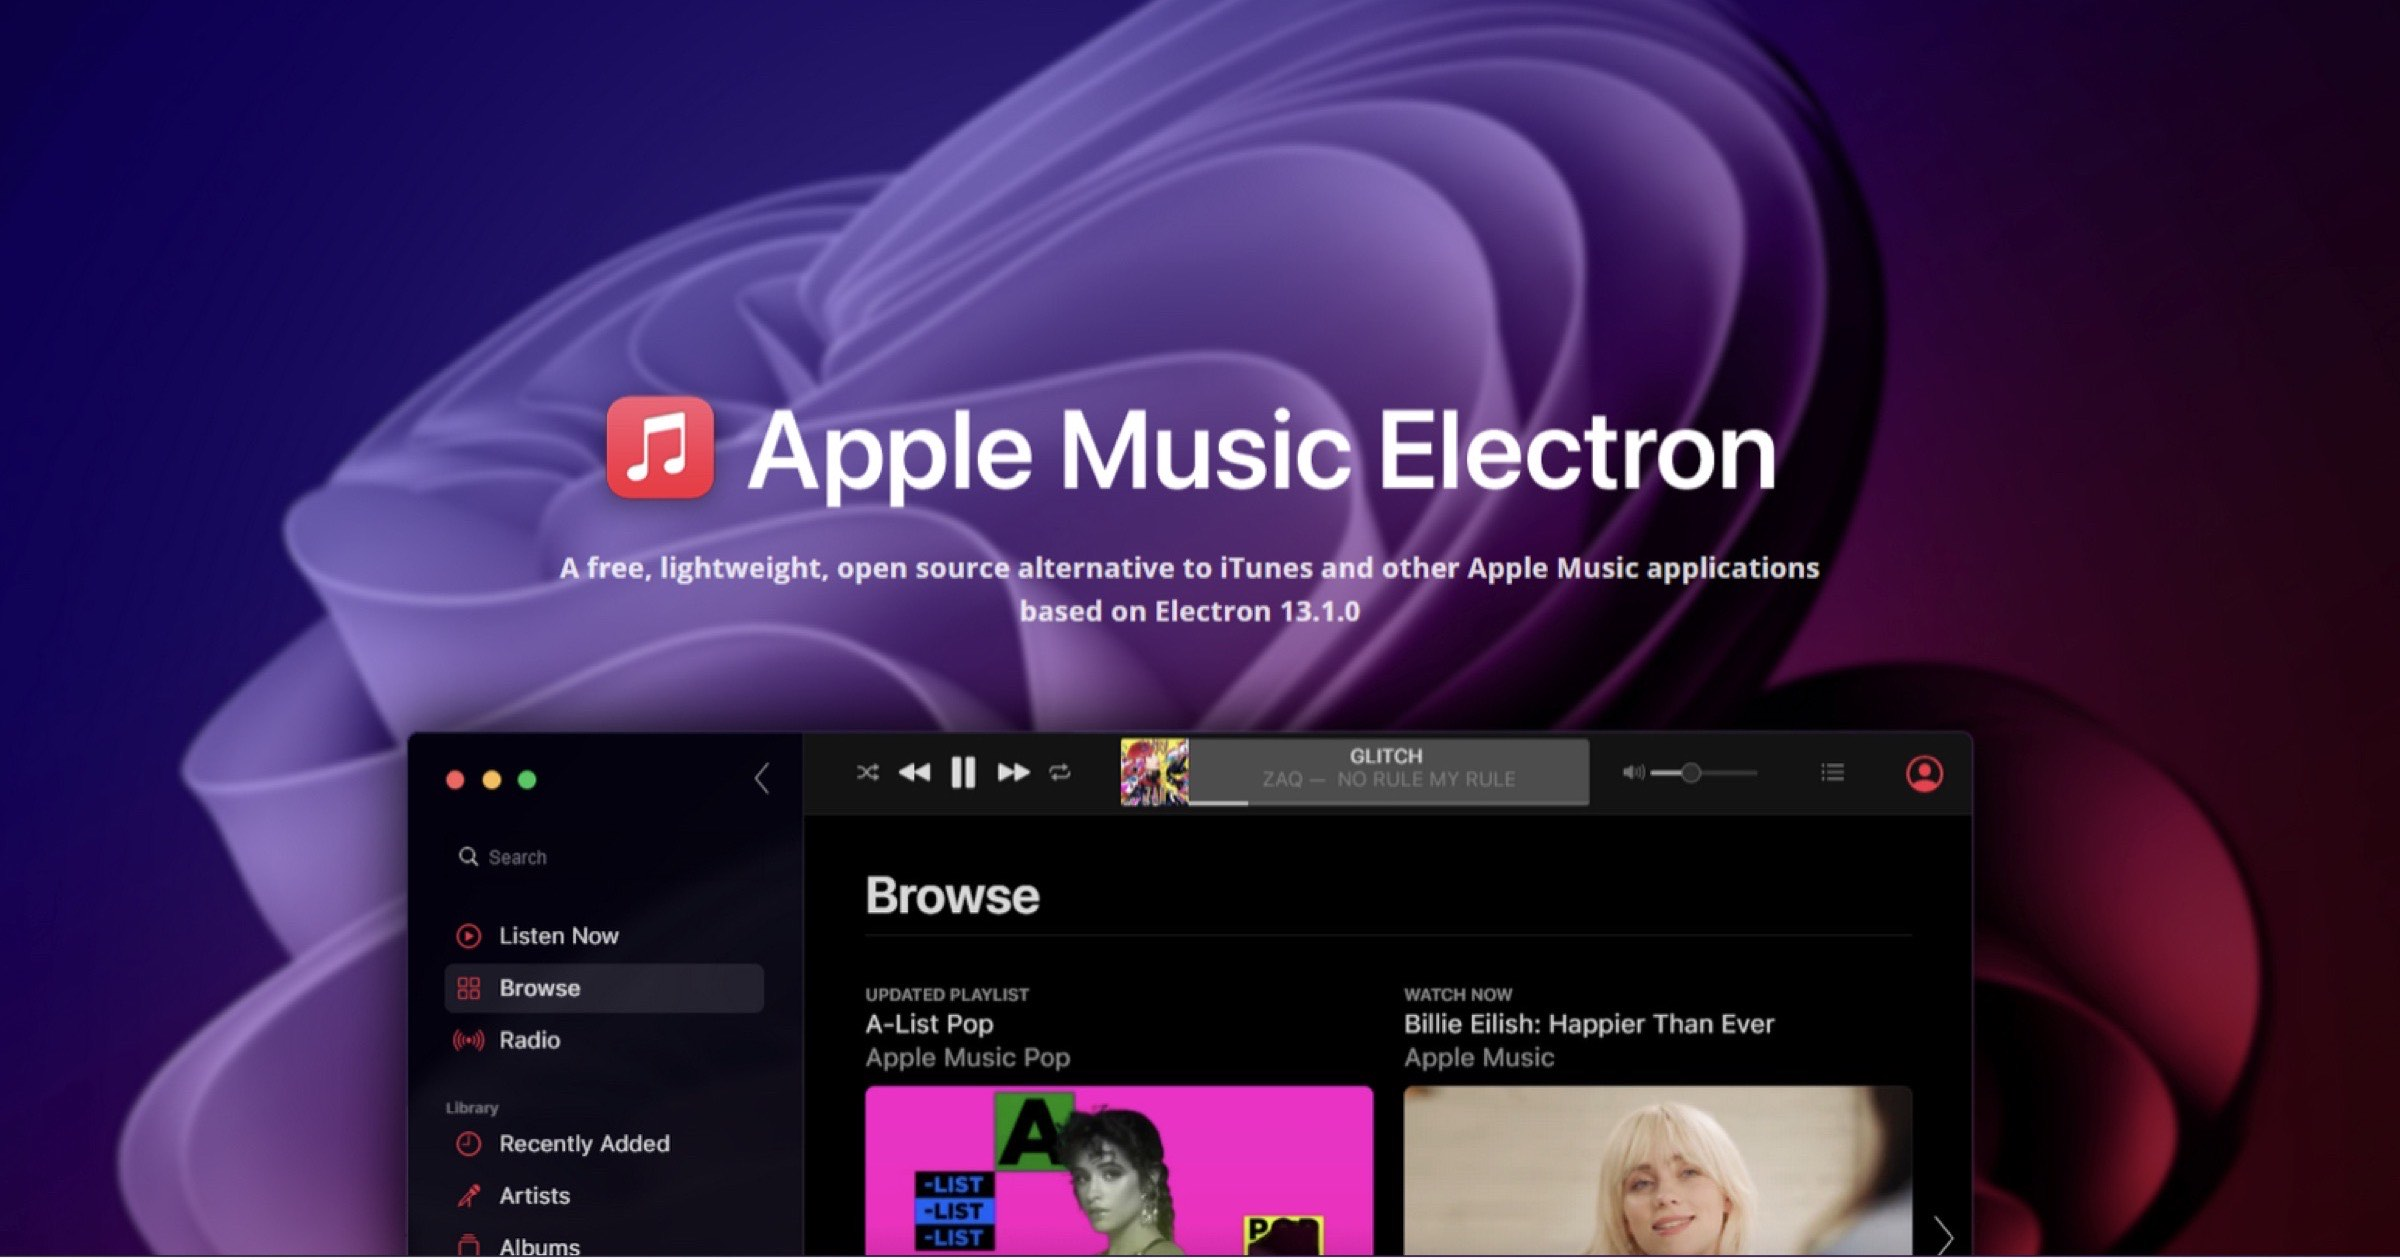 'Apple Music Electron' is a Free, Open Source Alternative